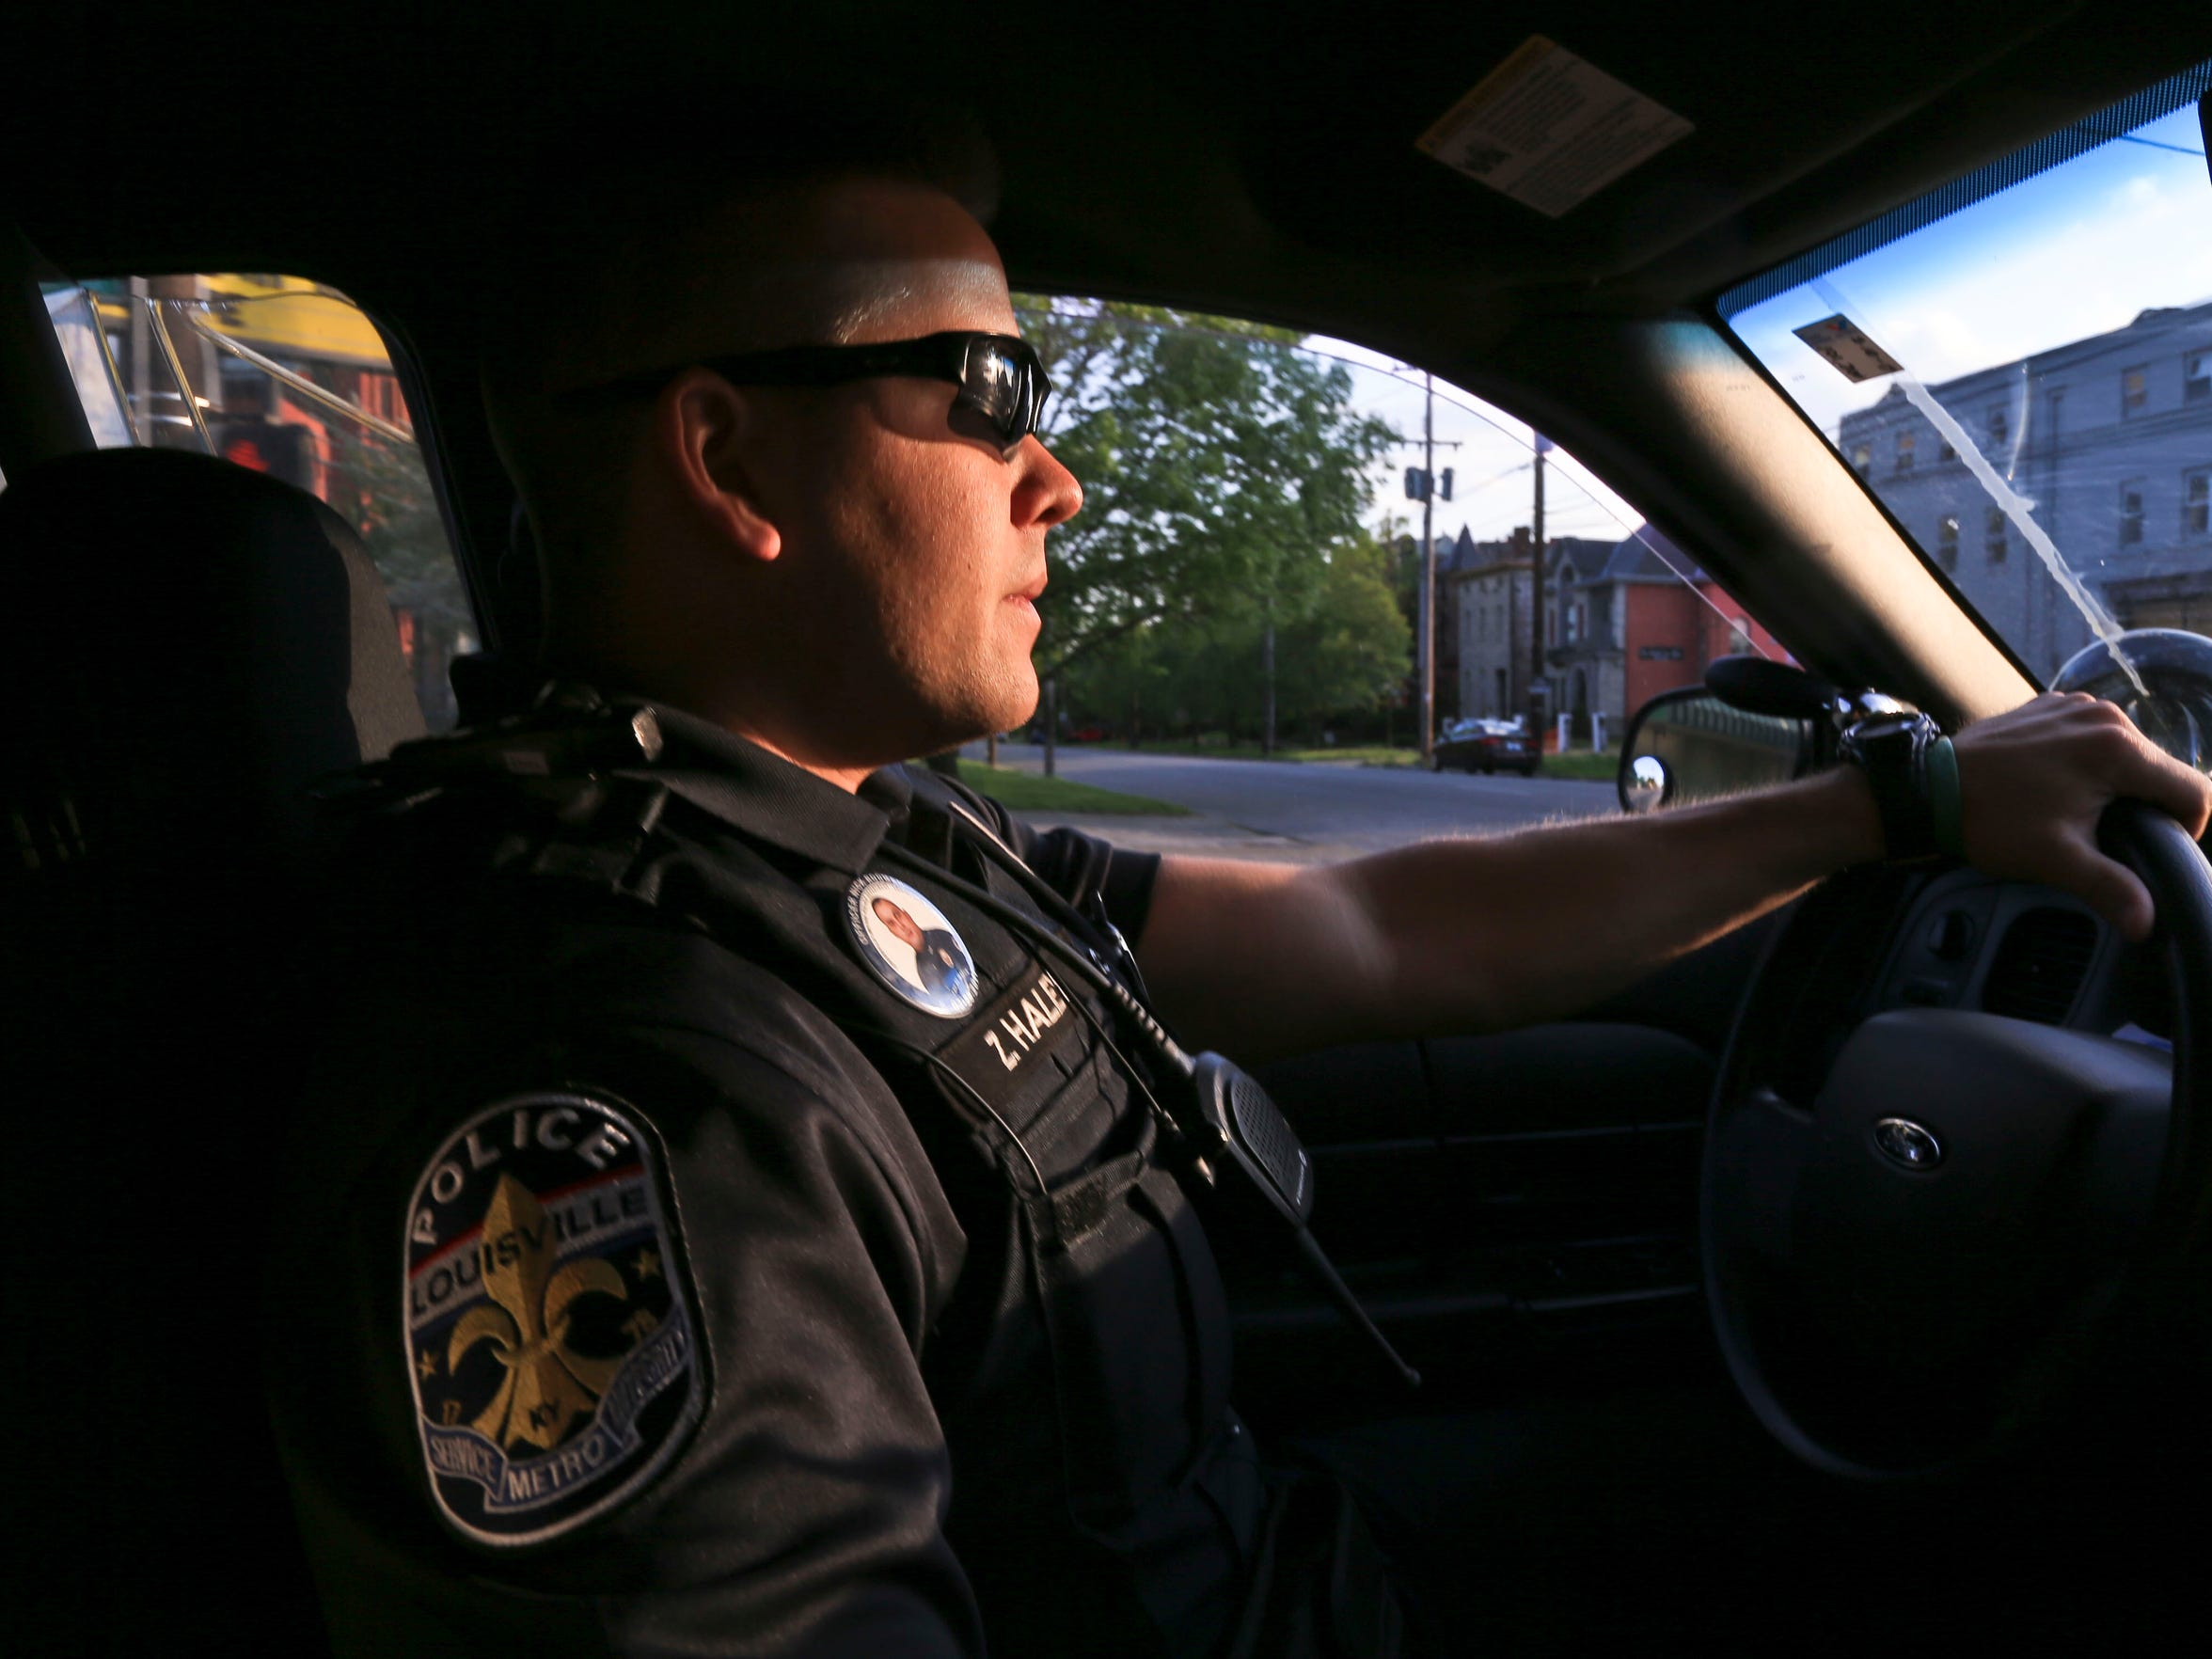 LMPD officer Zack Haley cruises through Old Louisville while on his 7 a.m. to 7 p.m. shift on a recent weekend. The Fourth Division is one of the busiest of the Louisville police divisions. He's had to respond to overdose calls frequently, sometimes up to two a night.